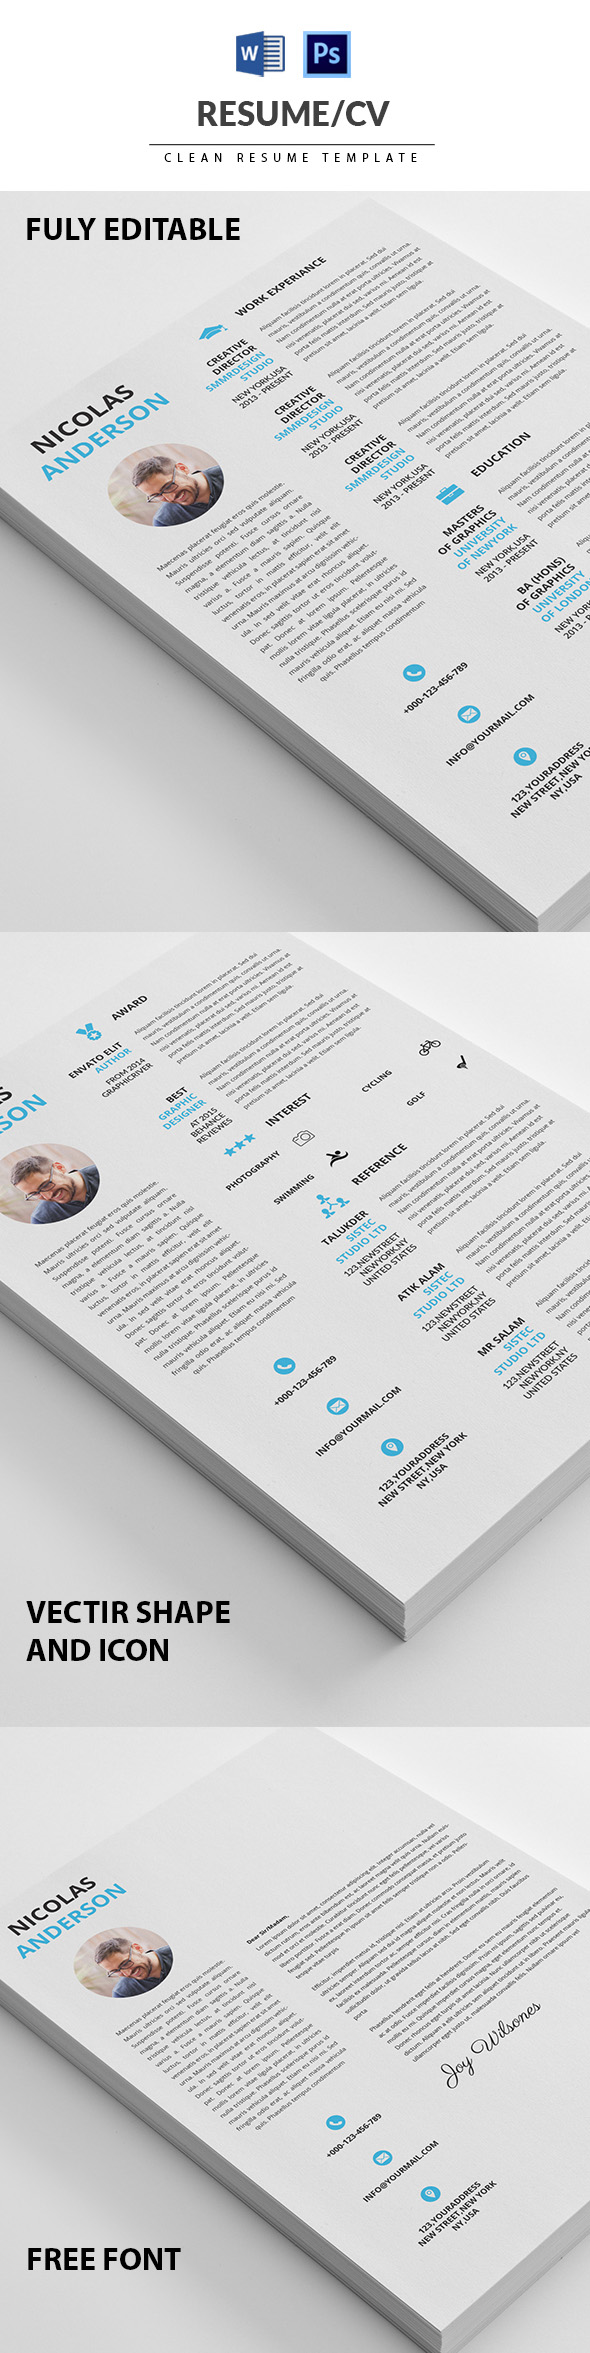 Clean Resume/CV Minimal Template